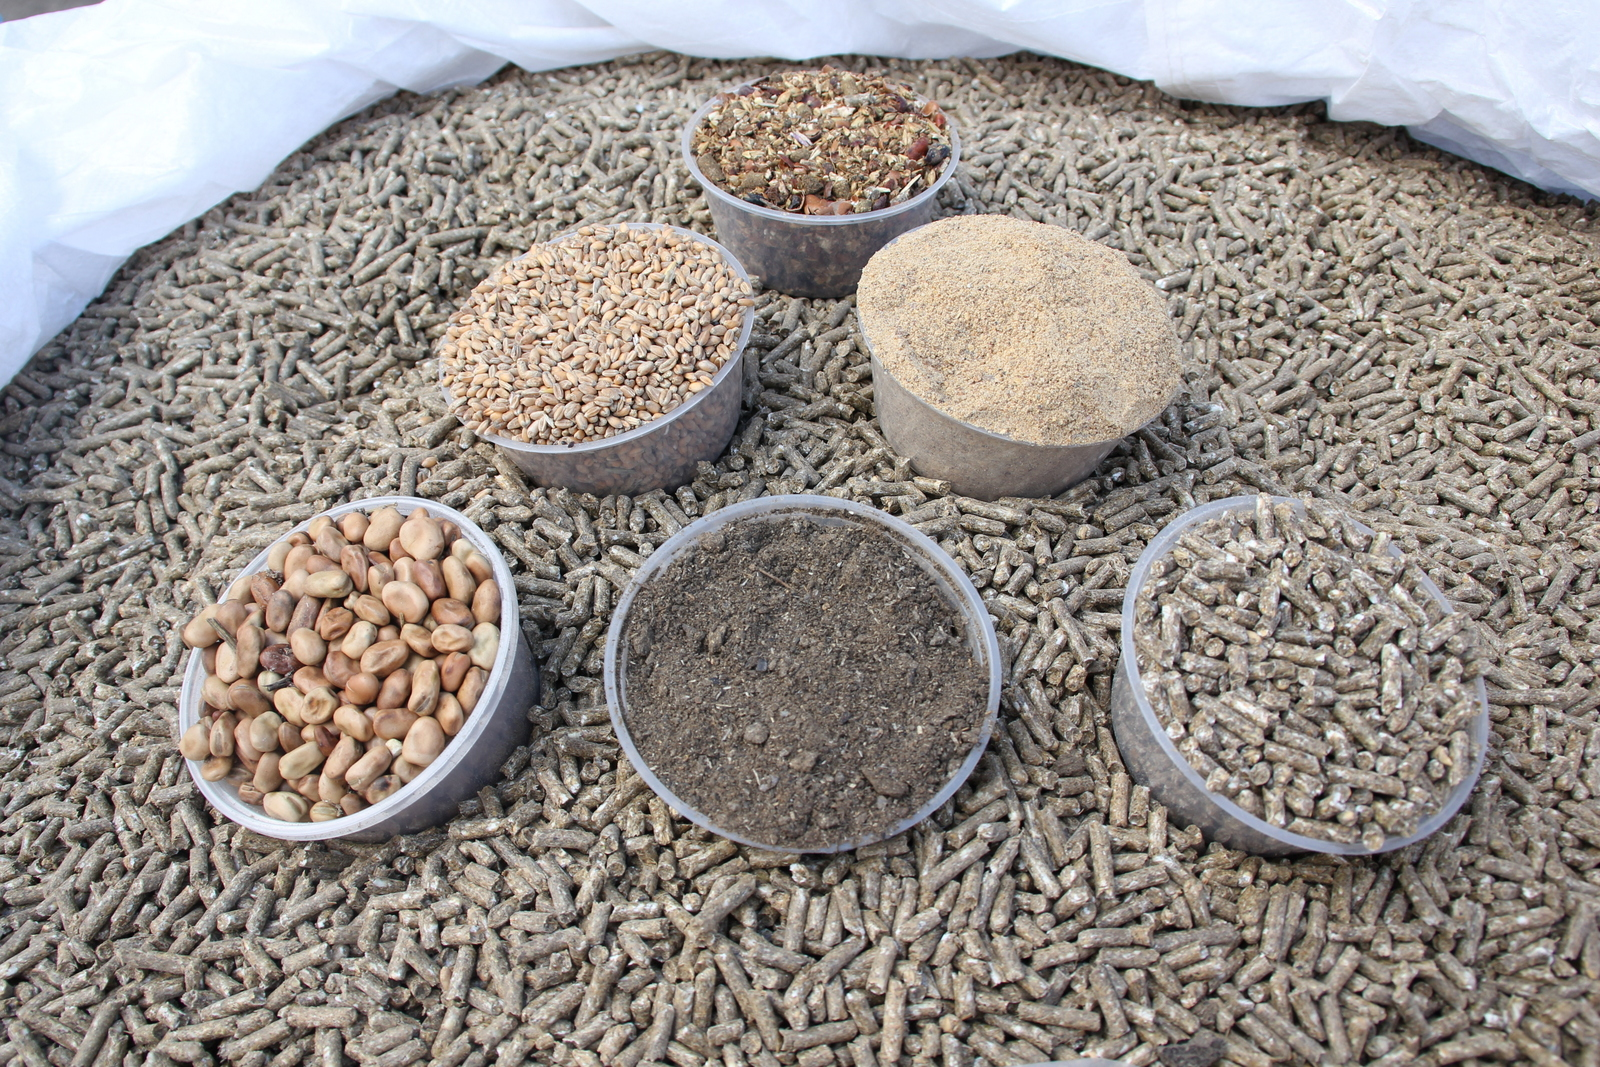 Northumbrian Quality Feeds Quality Feed Products To Match The